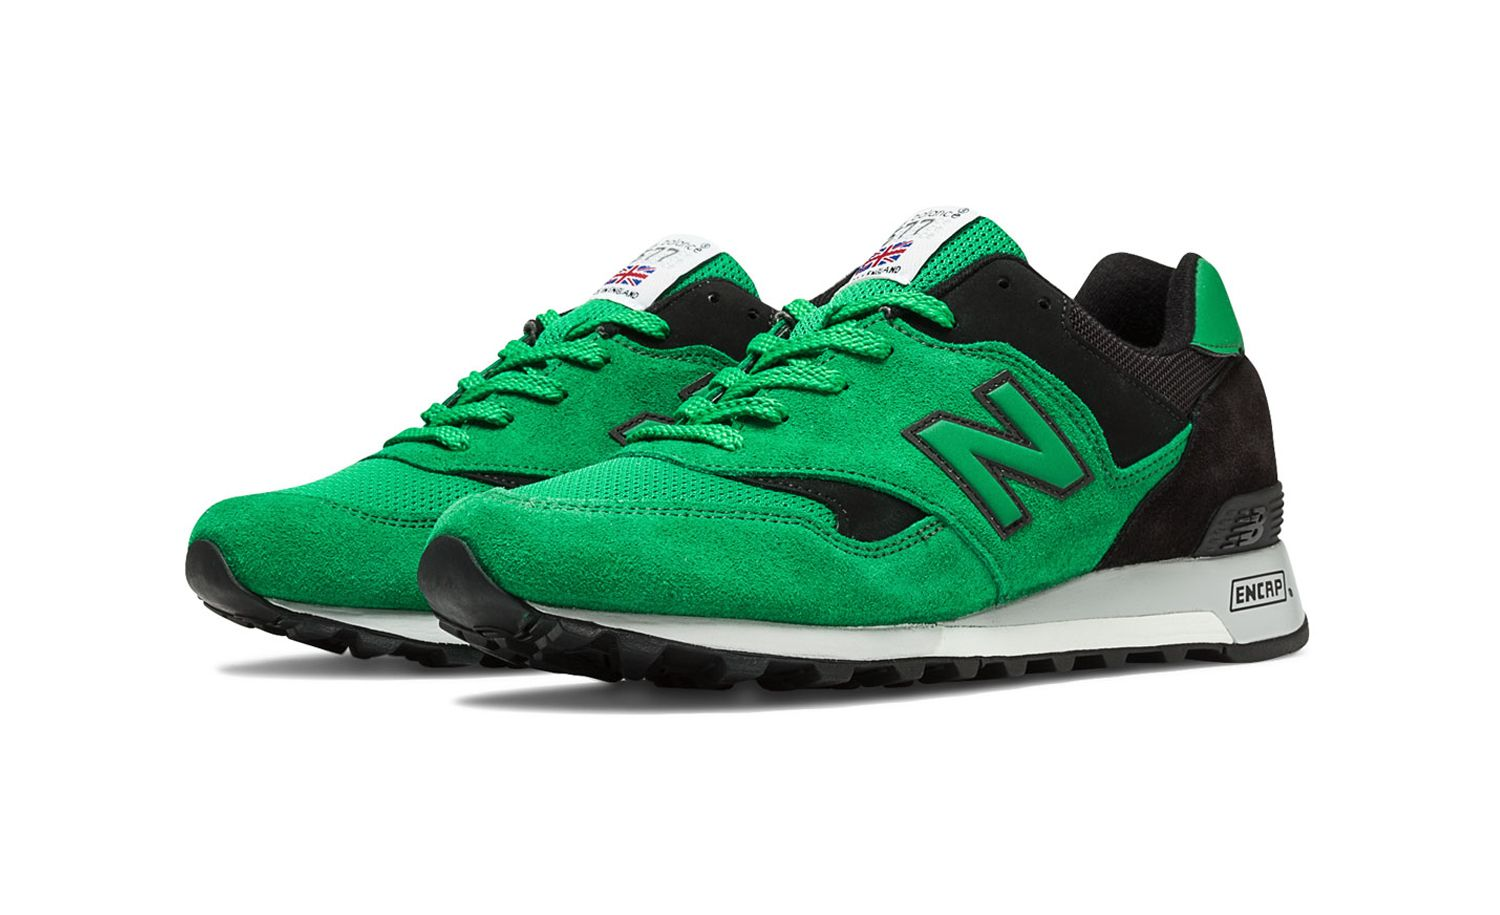 New Balance 577 Made in UK